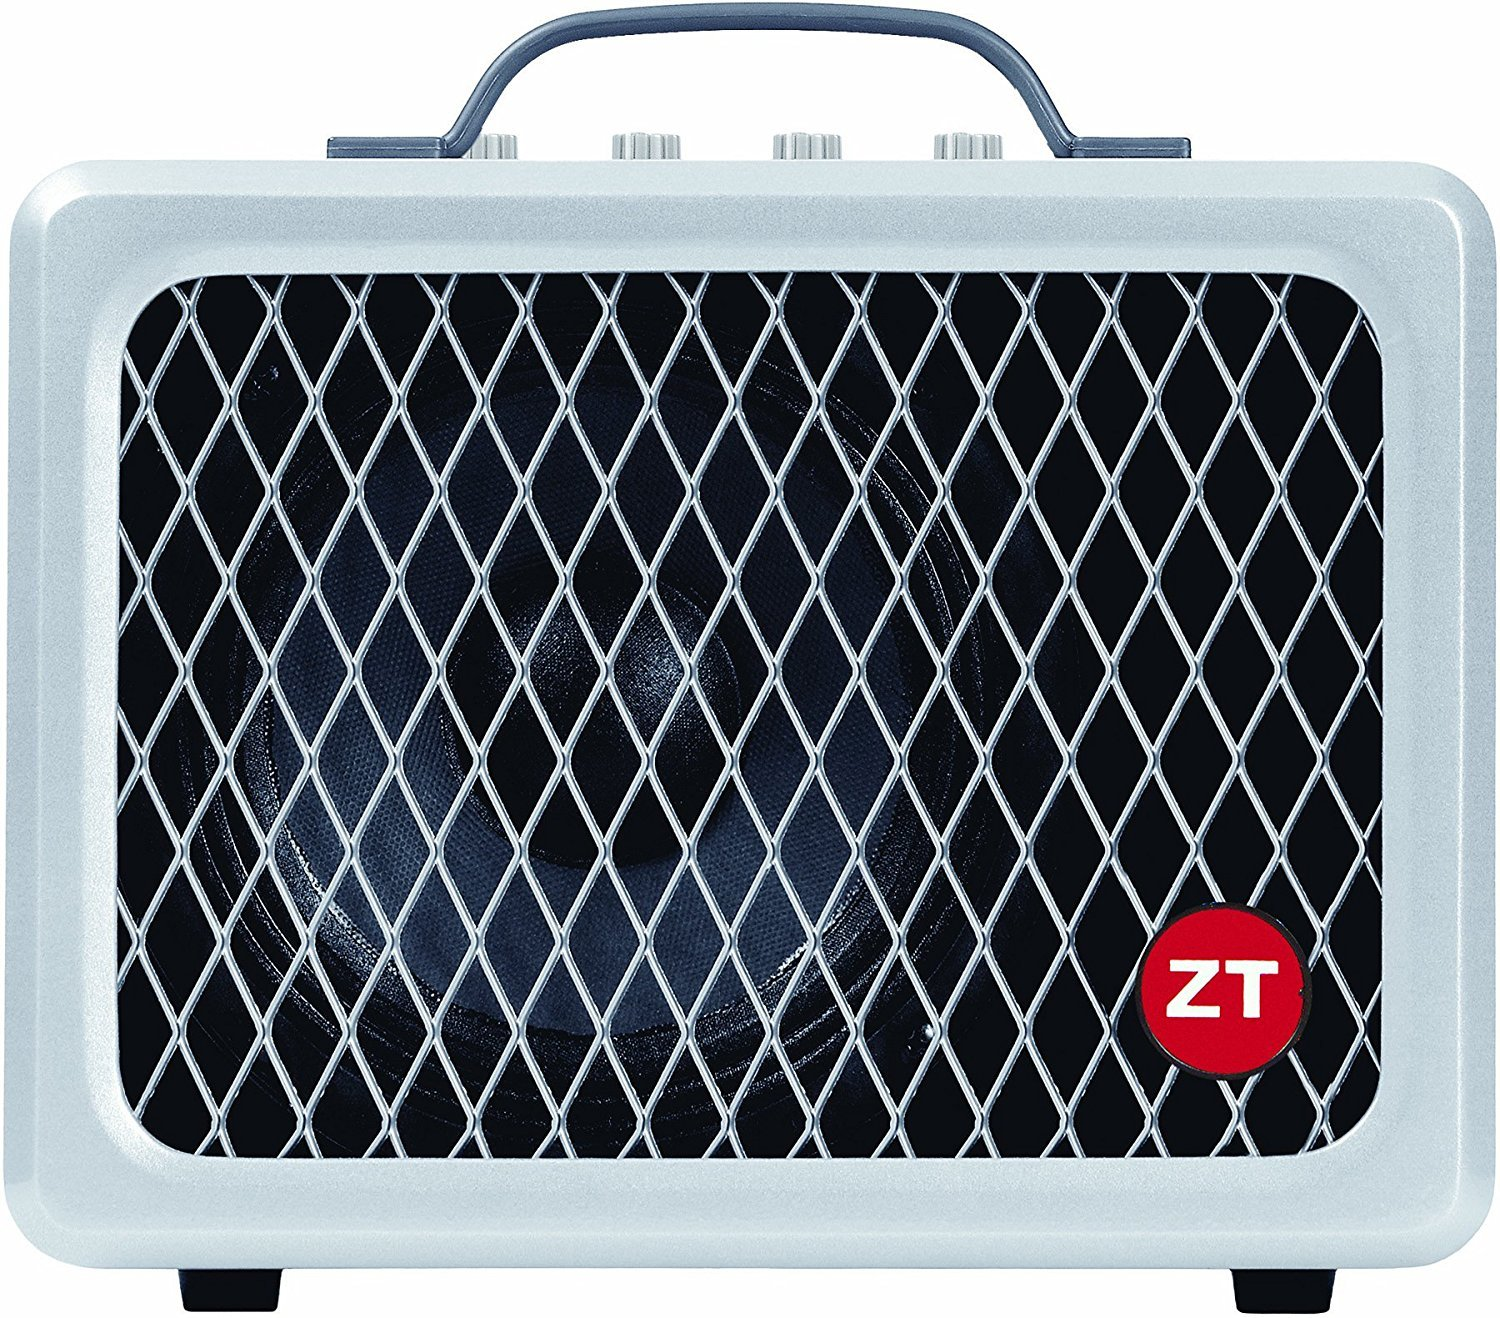 ZT Amplifiers Lunchbox 200-watt Class A/B Guitar Amplifier with 6.5-inch Internal Speaker by ZT Amplifiers (Image #1)